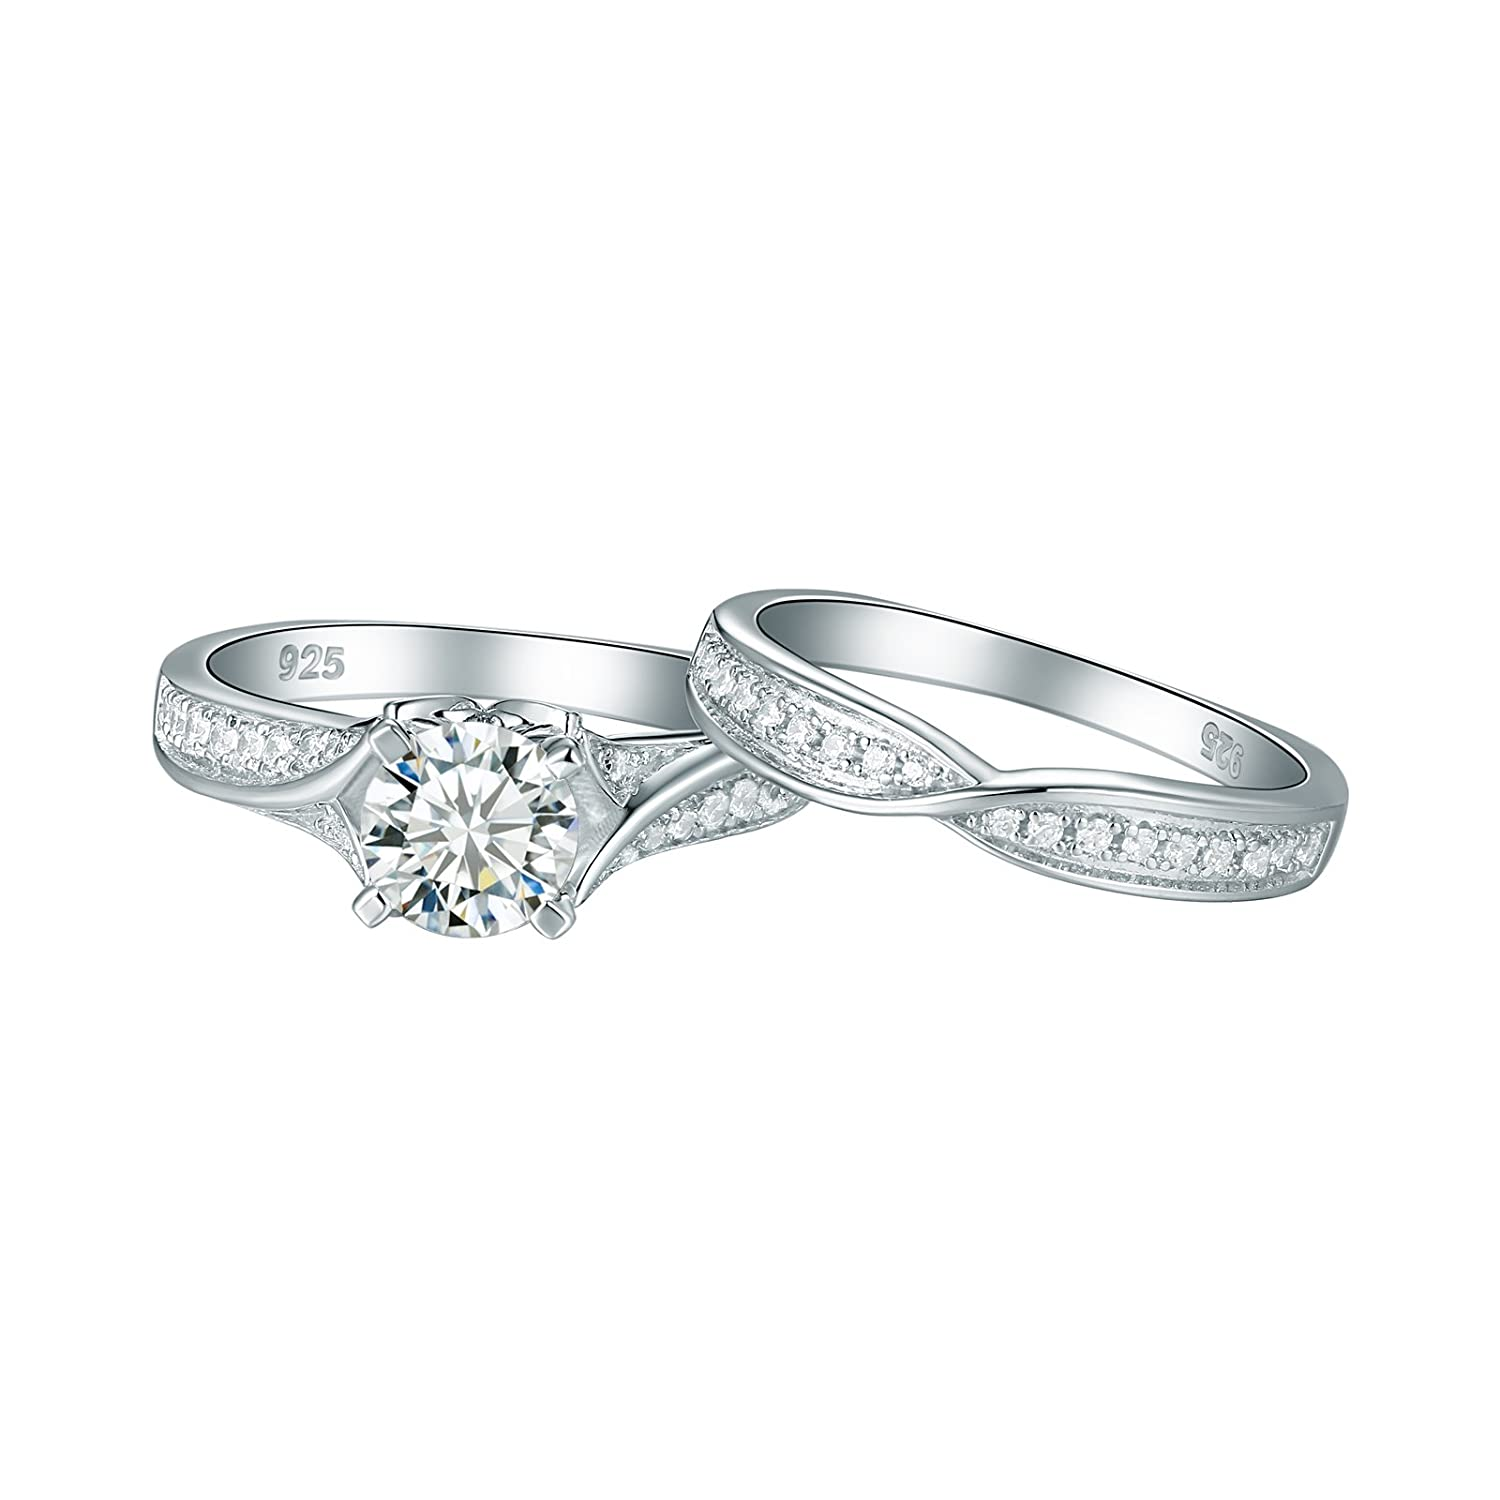 Newshe 1.4ct Round White AAA Cz 925 Sterling Silver Engagement Wedding Ring Set for Woman Size 5-10 Newshe Jewellery JR4825/_SS